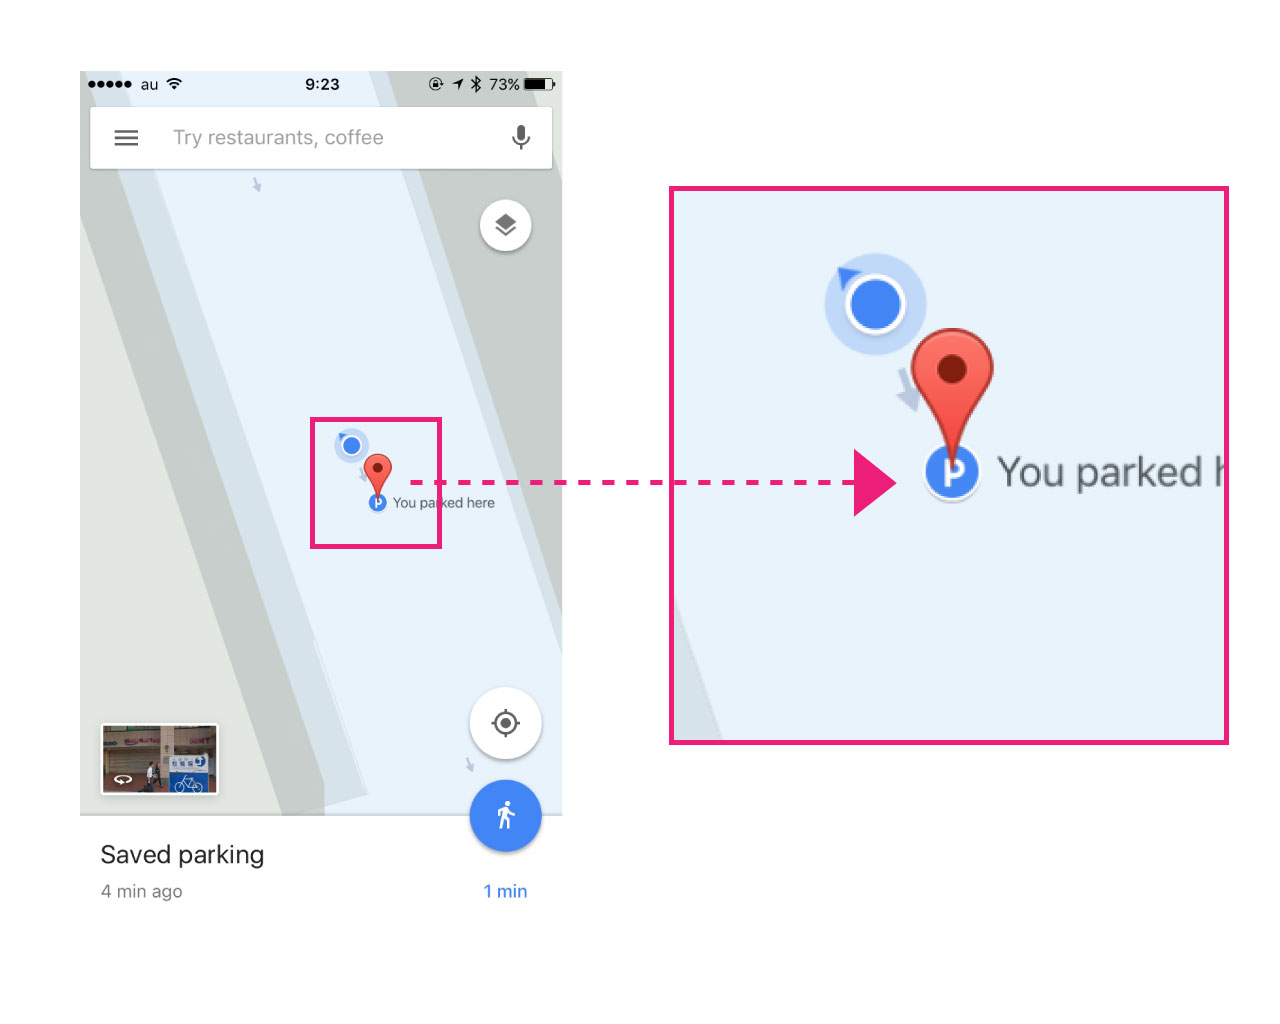 googlemap-parking-place-3